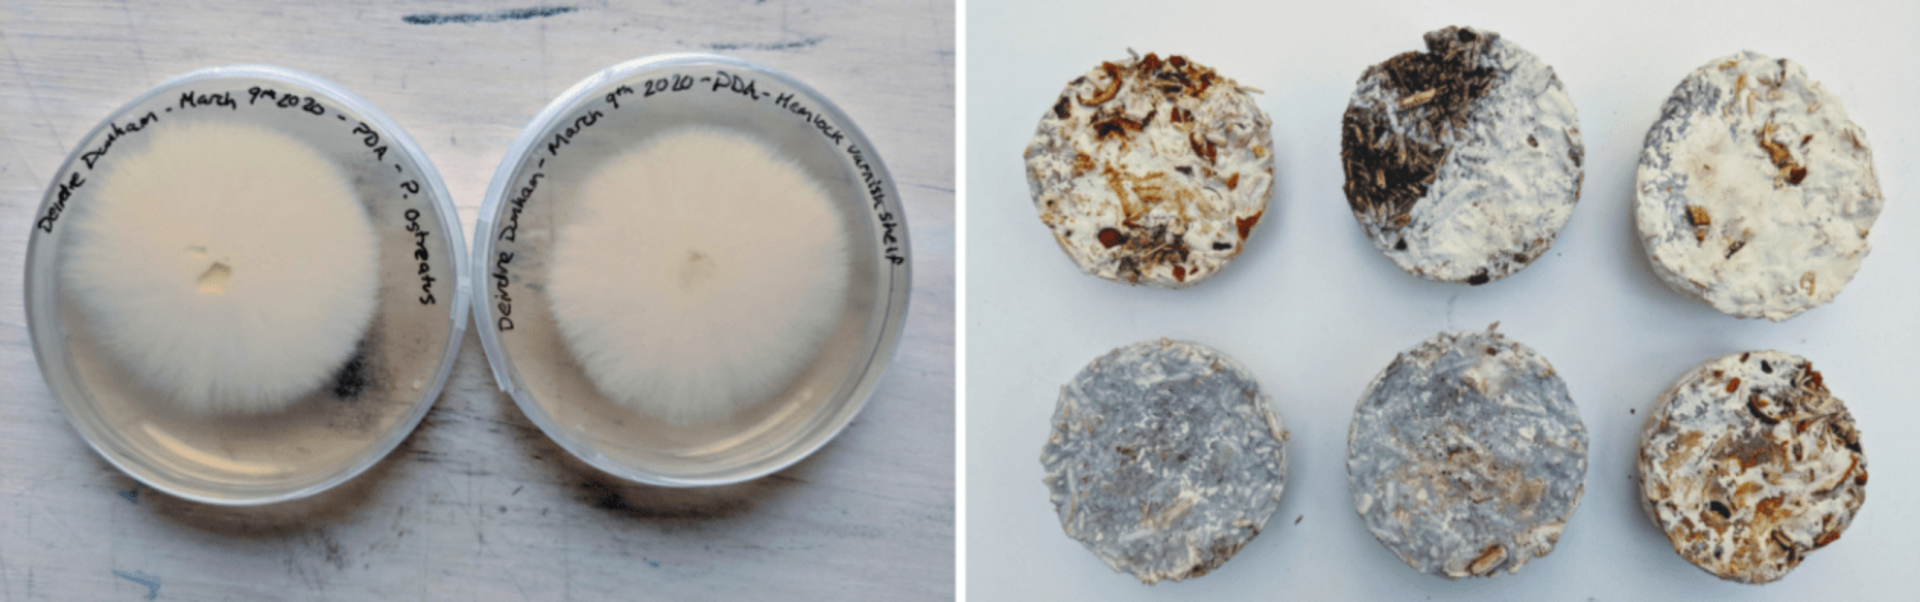 Mycelium growth and samples - finished samples contain citrus peels and coffee grounds